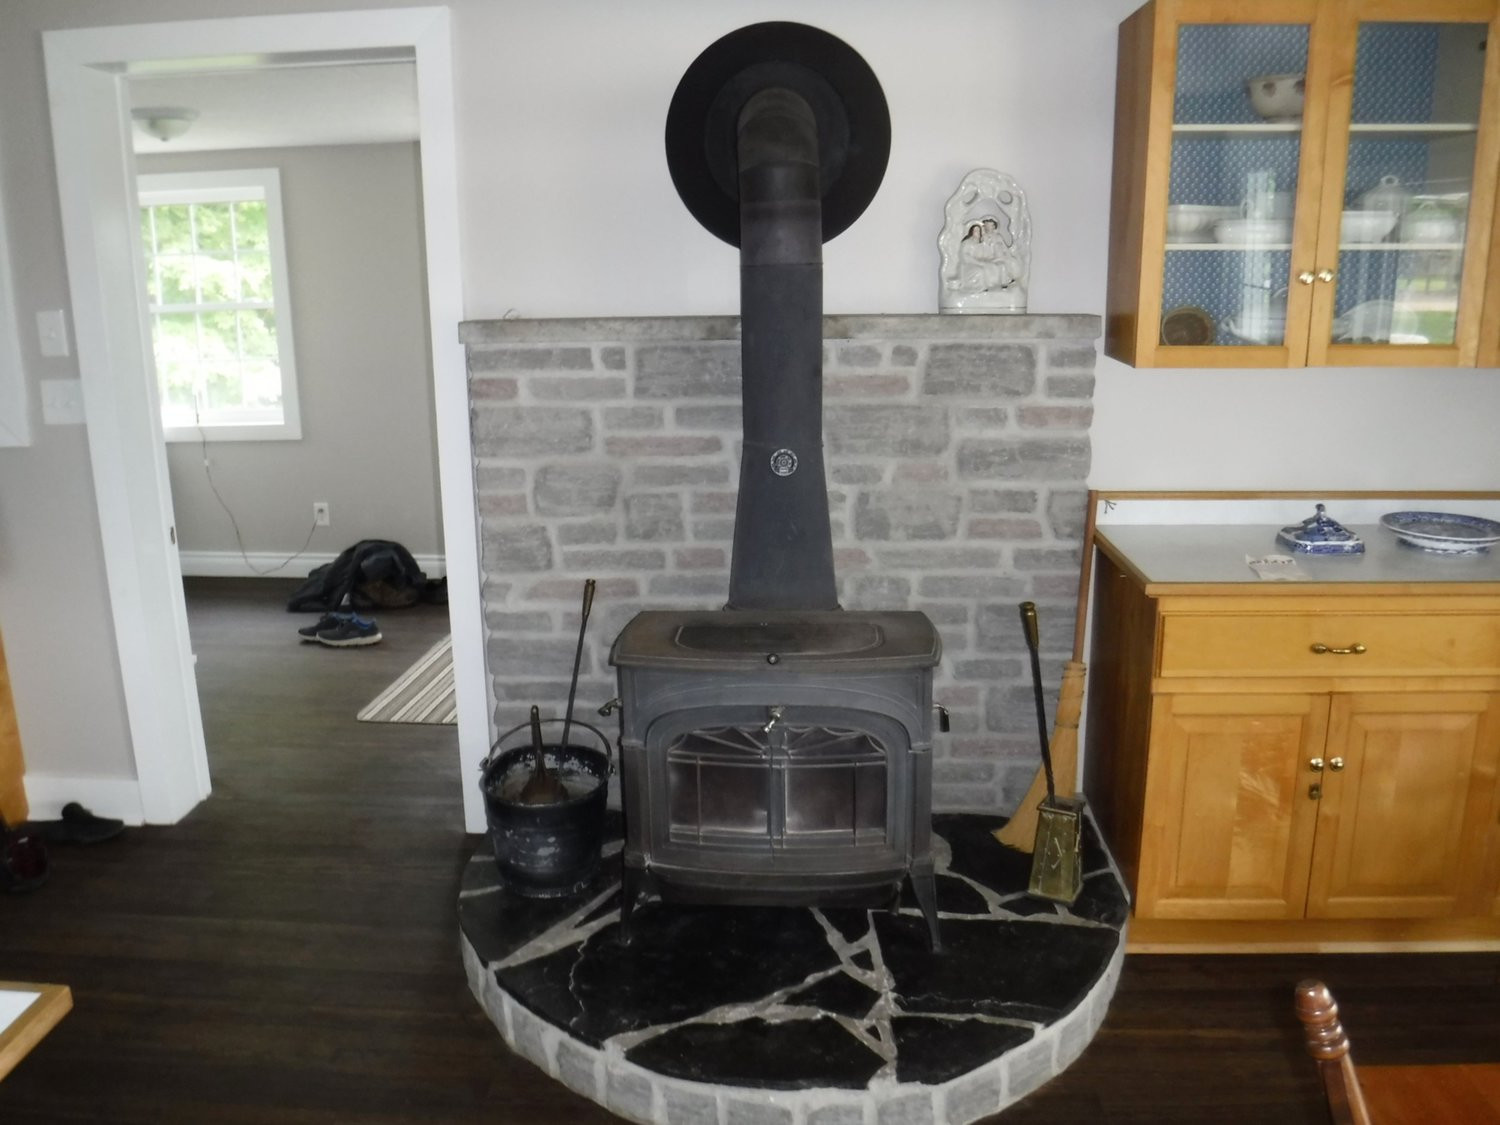 19 Cute total Hardwood Flooring Barrie 2021 free download total hardwood flooring barrie of wood burning appliances and wett inspections cherry home inspections with wood burning appliances and wett inspections